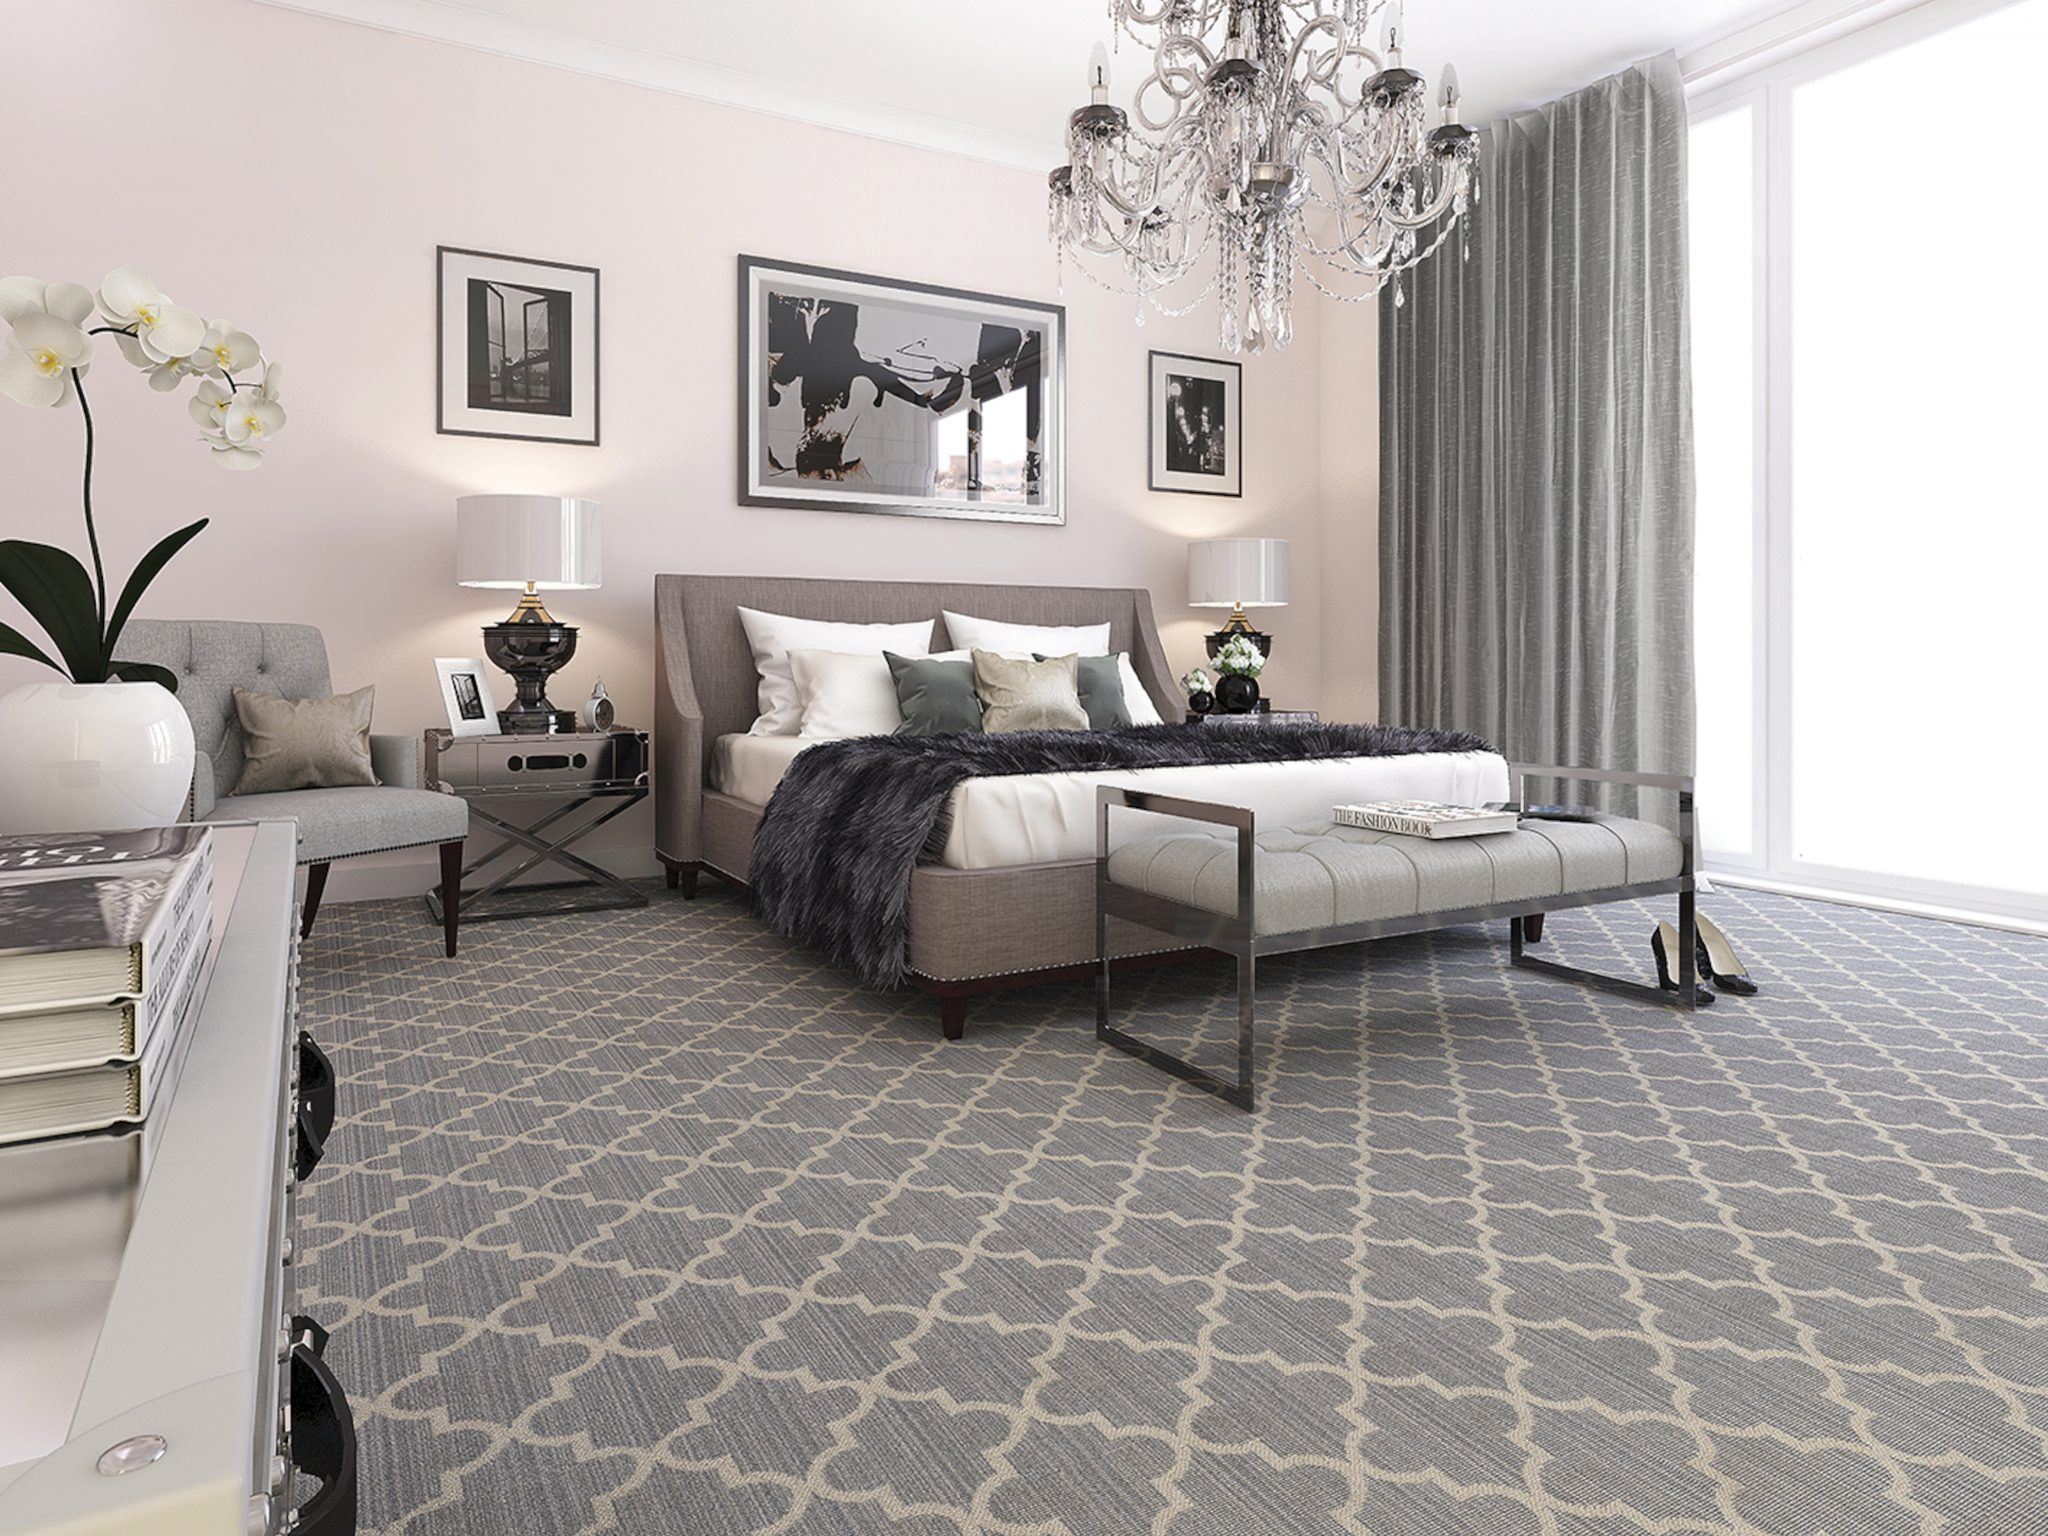 How To Choose Carpets For Your Bedroom With Ease & Confidence?